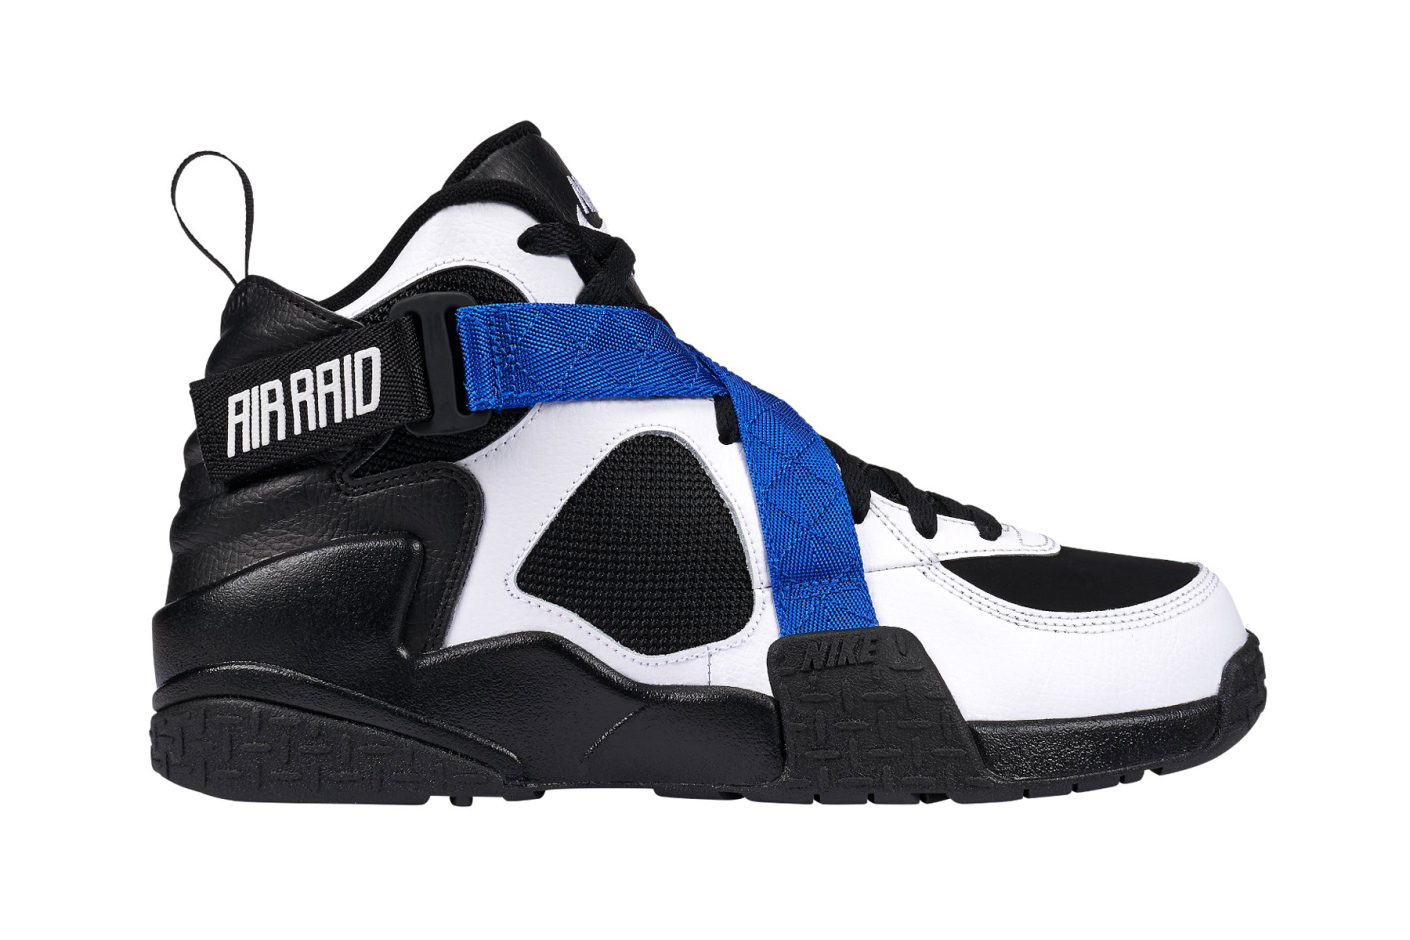 nike-air-raid-black-white-game-royal-1